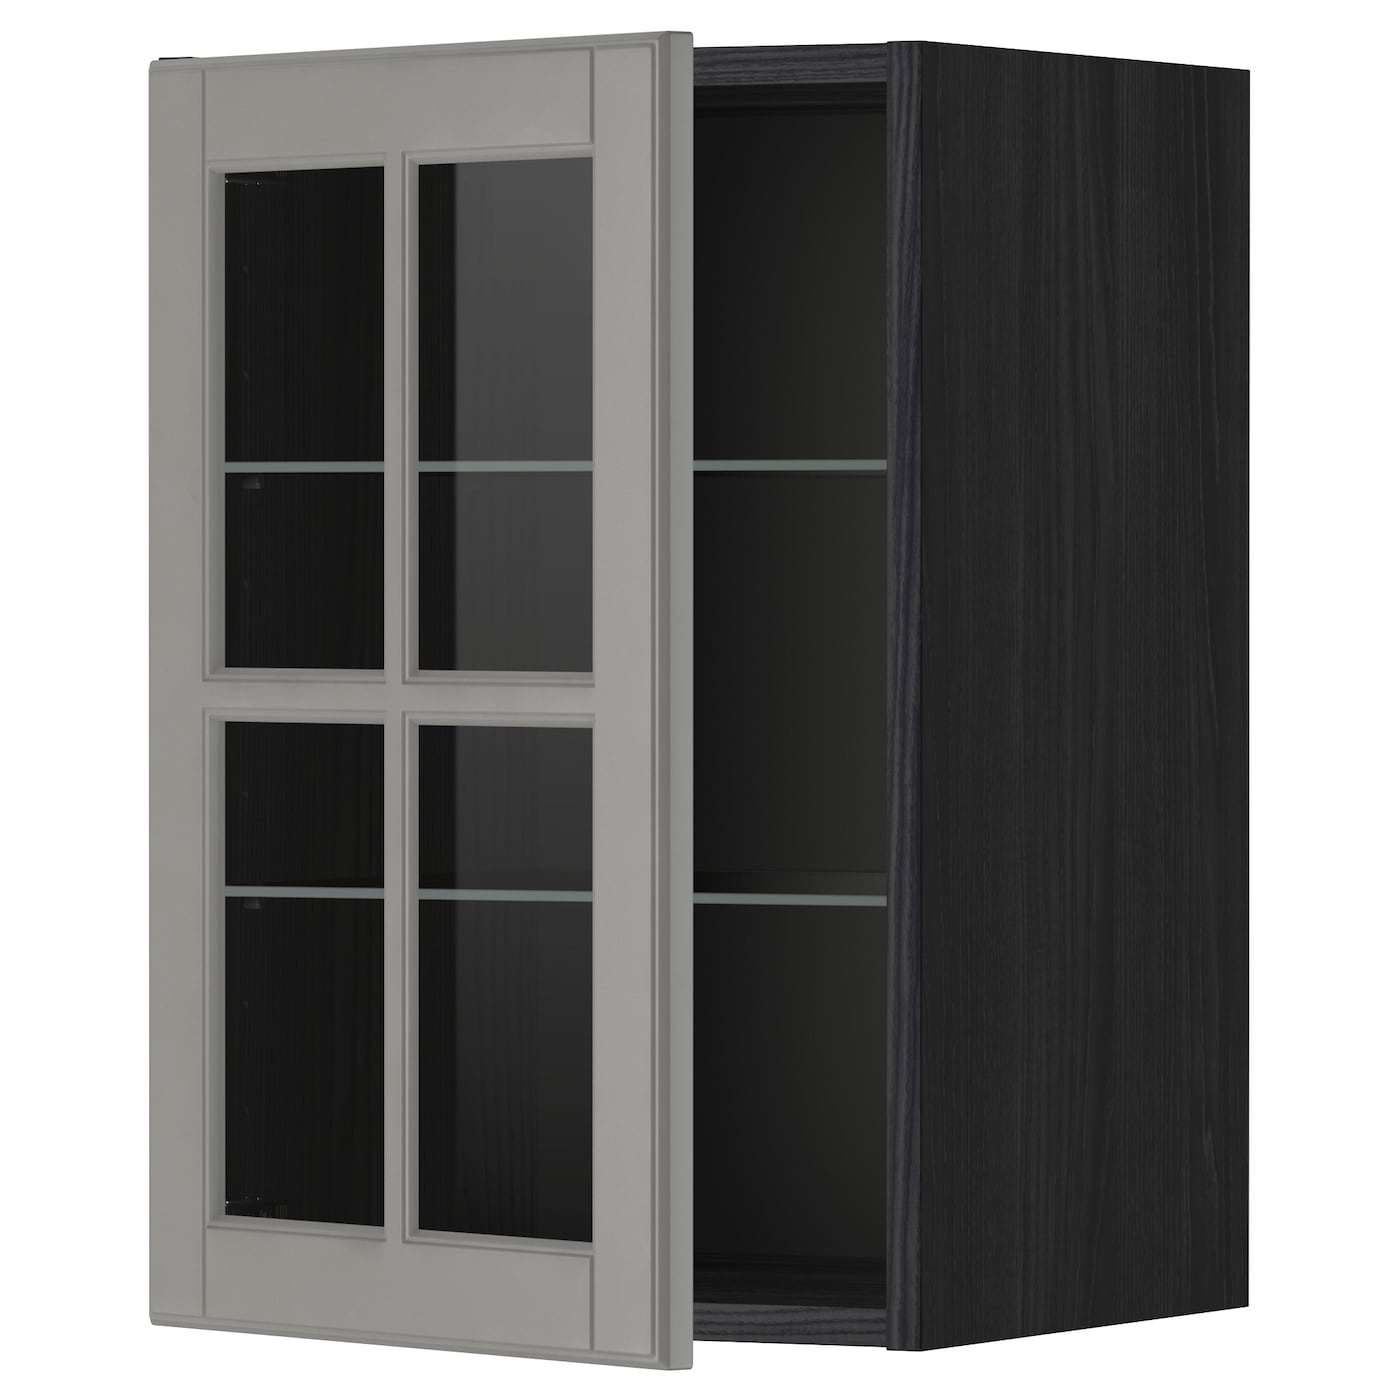 metod wall cabinet w shelves/glass door black/bodbyn grey 40x60 cm